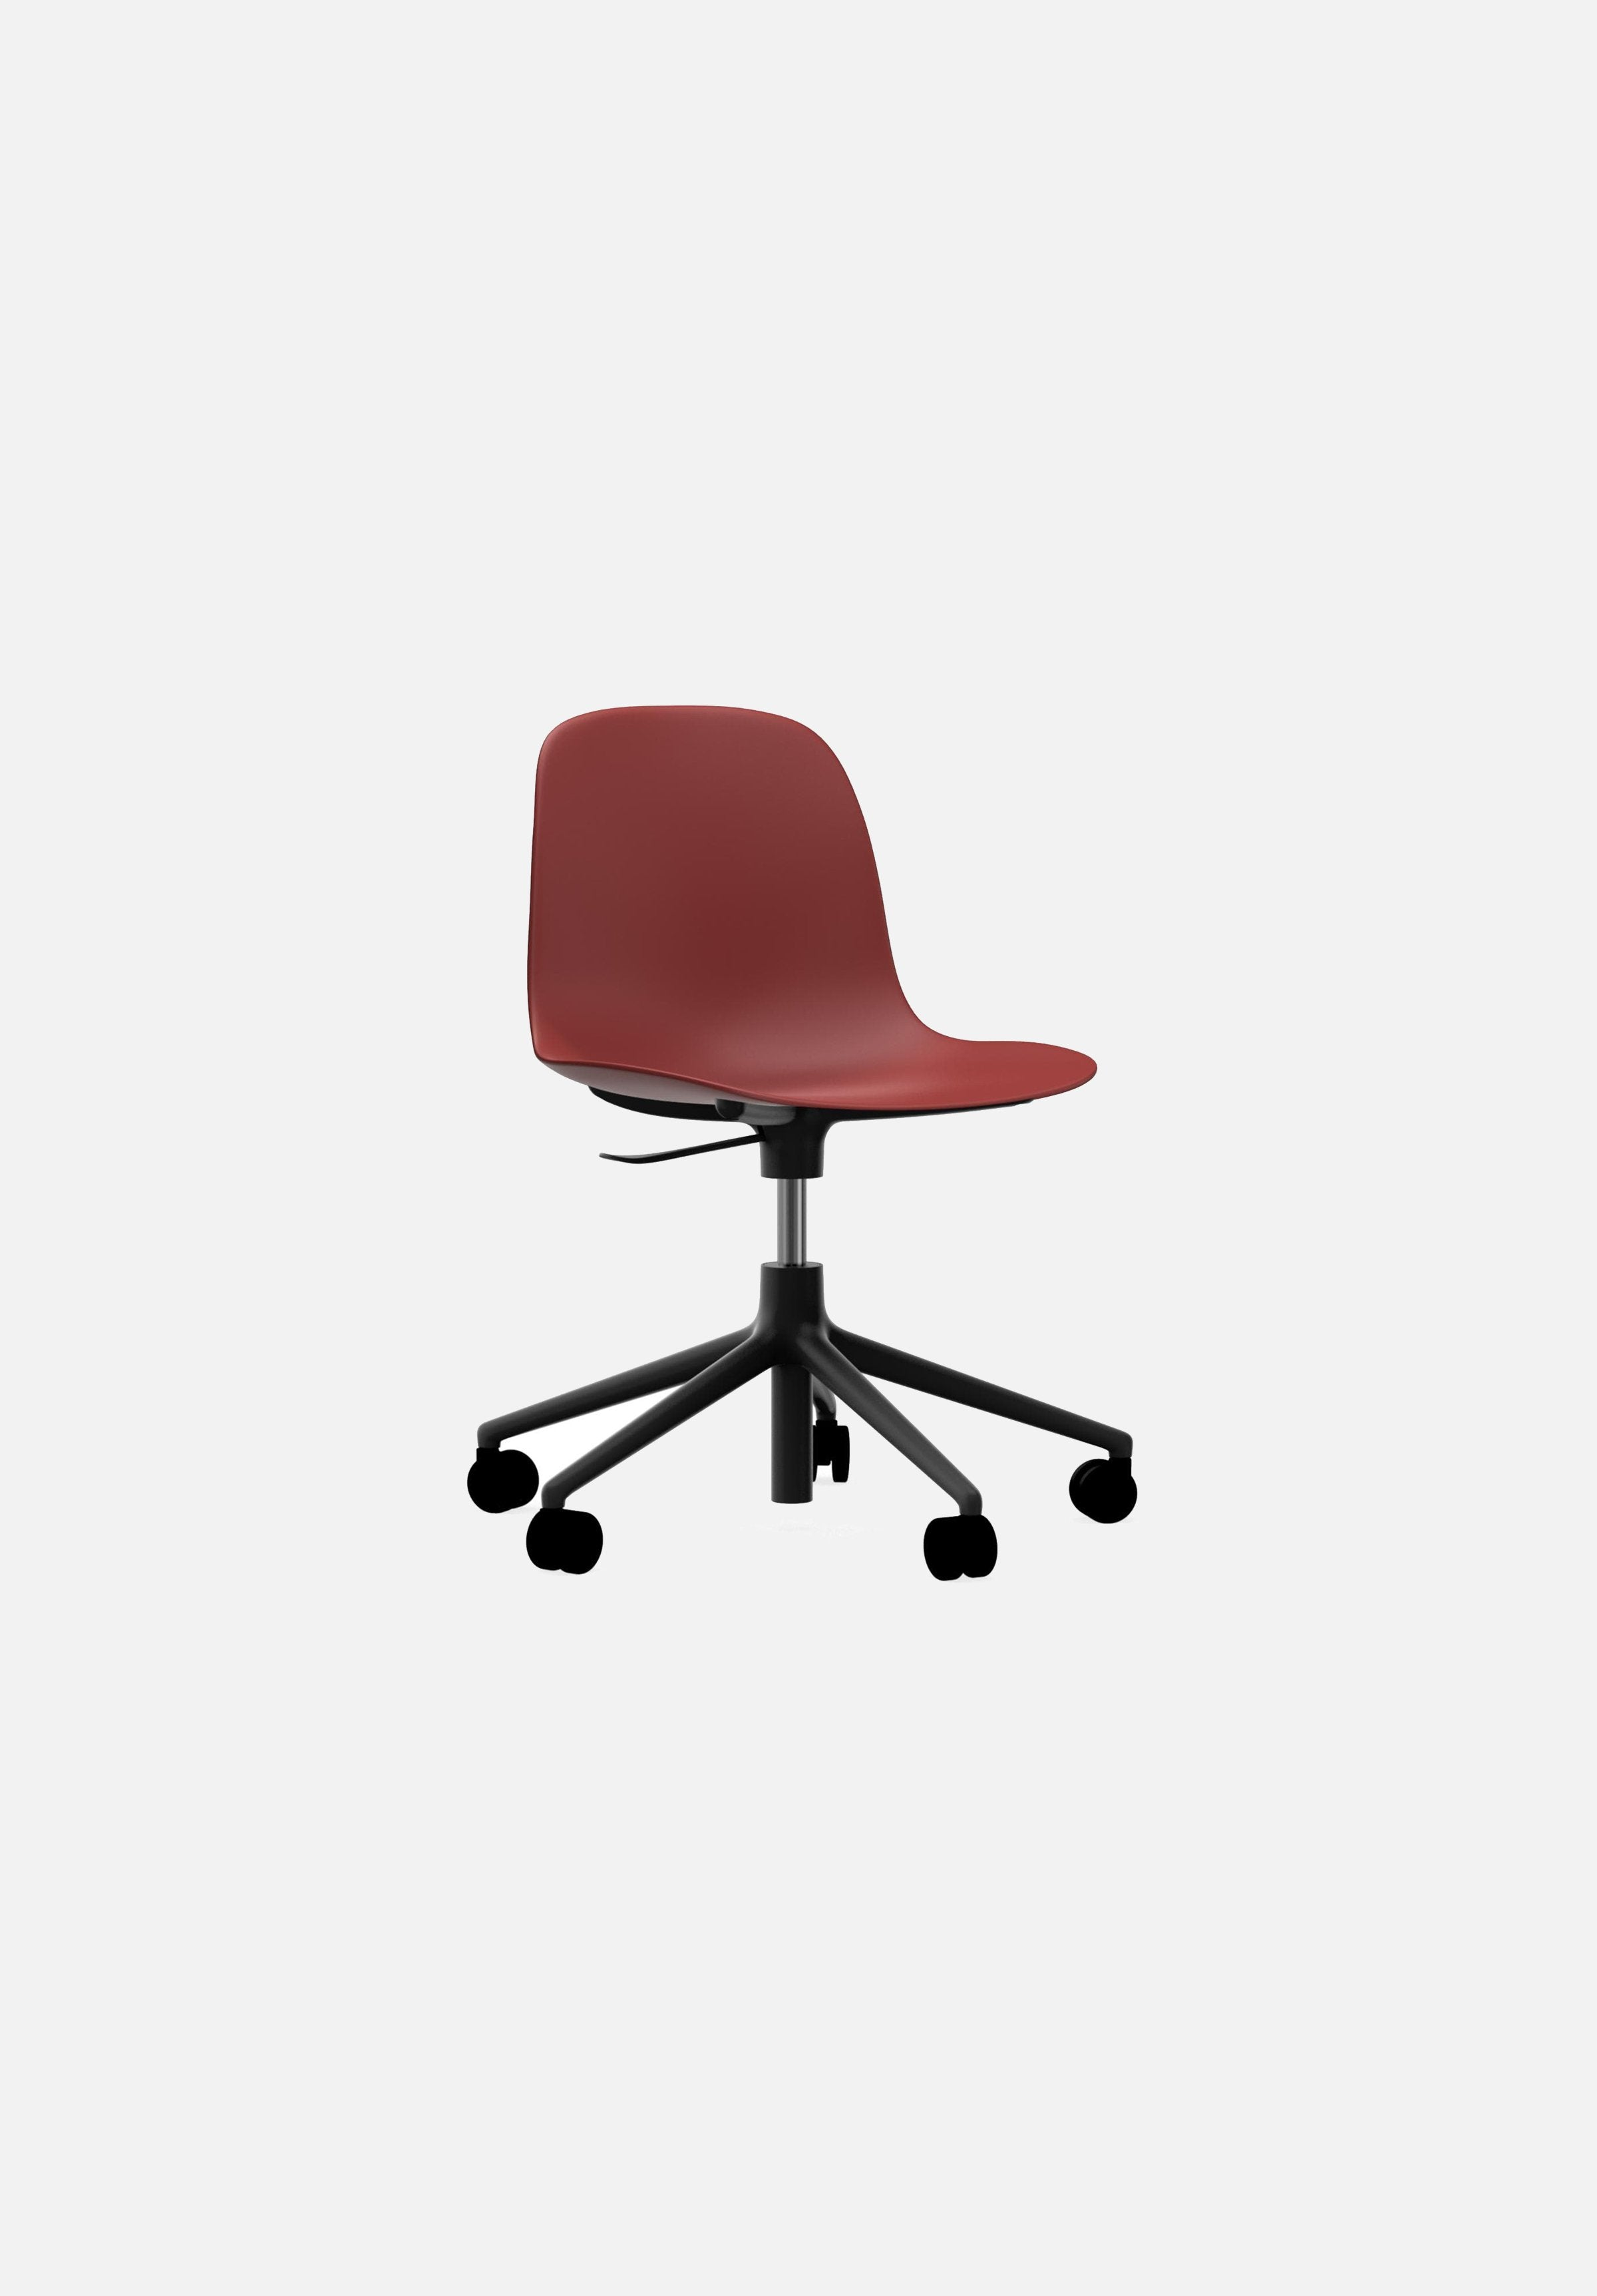 Form Chair — Swivel Gaslift-Simon Legald-Normann Copenhagen-Red-Black Aluminum-Average-canada-design-store-danish-denmark-furniture-interior